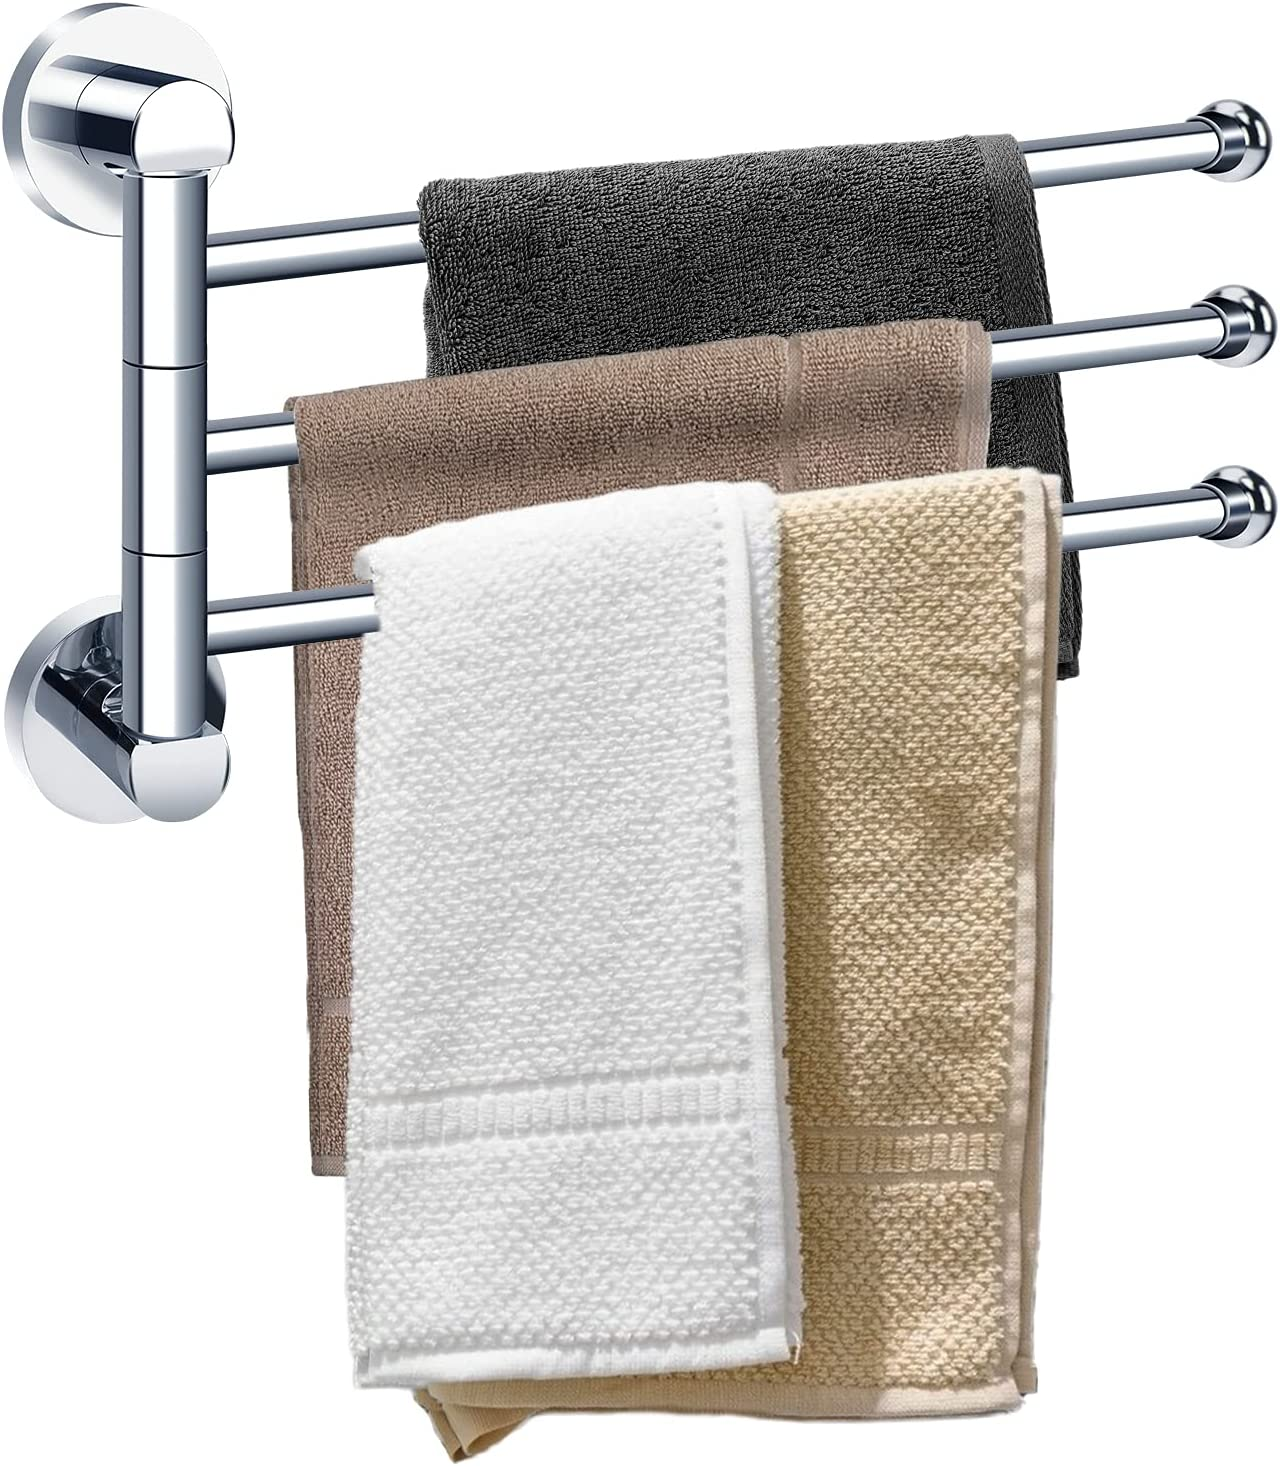 Max 90% OFF WIOR Swing Special Campaign Out Towel Bar Sw Steel Wall-Mounted Stainless SUS304